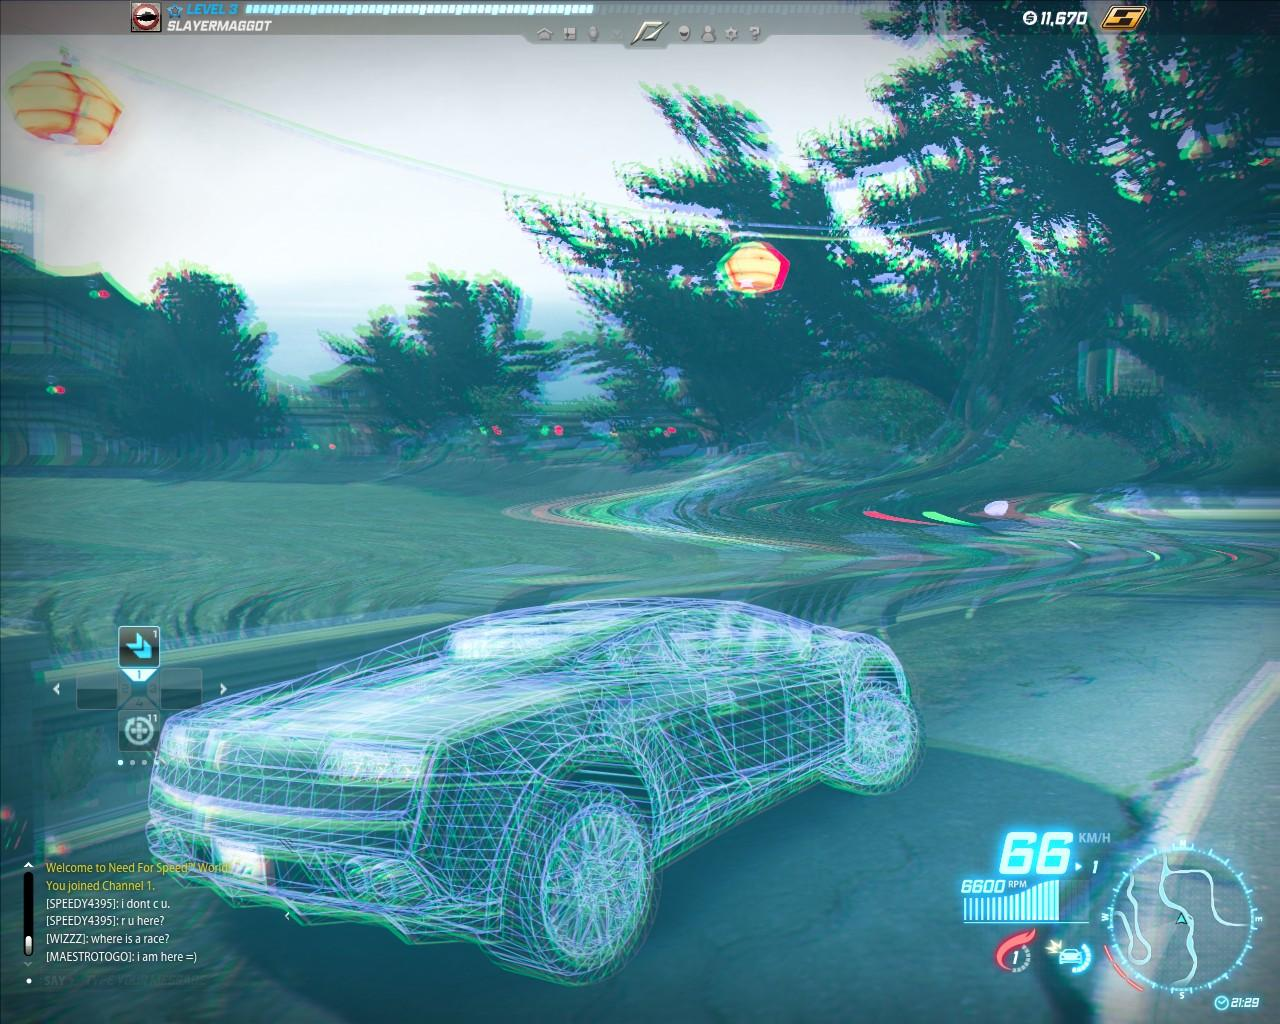 View topic - Need For Speed World Online - BetaArchive